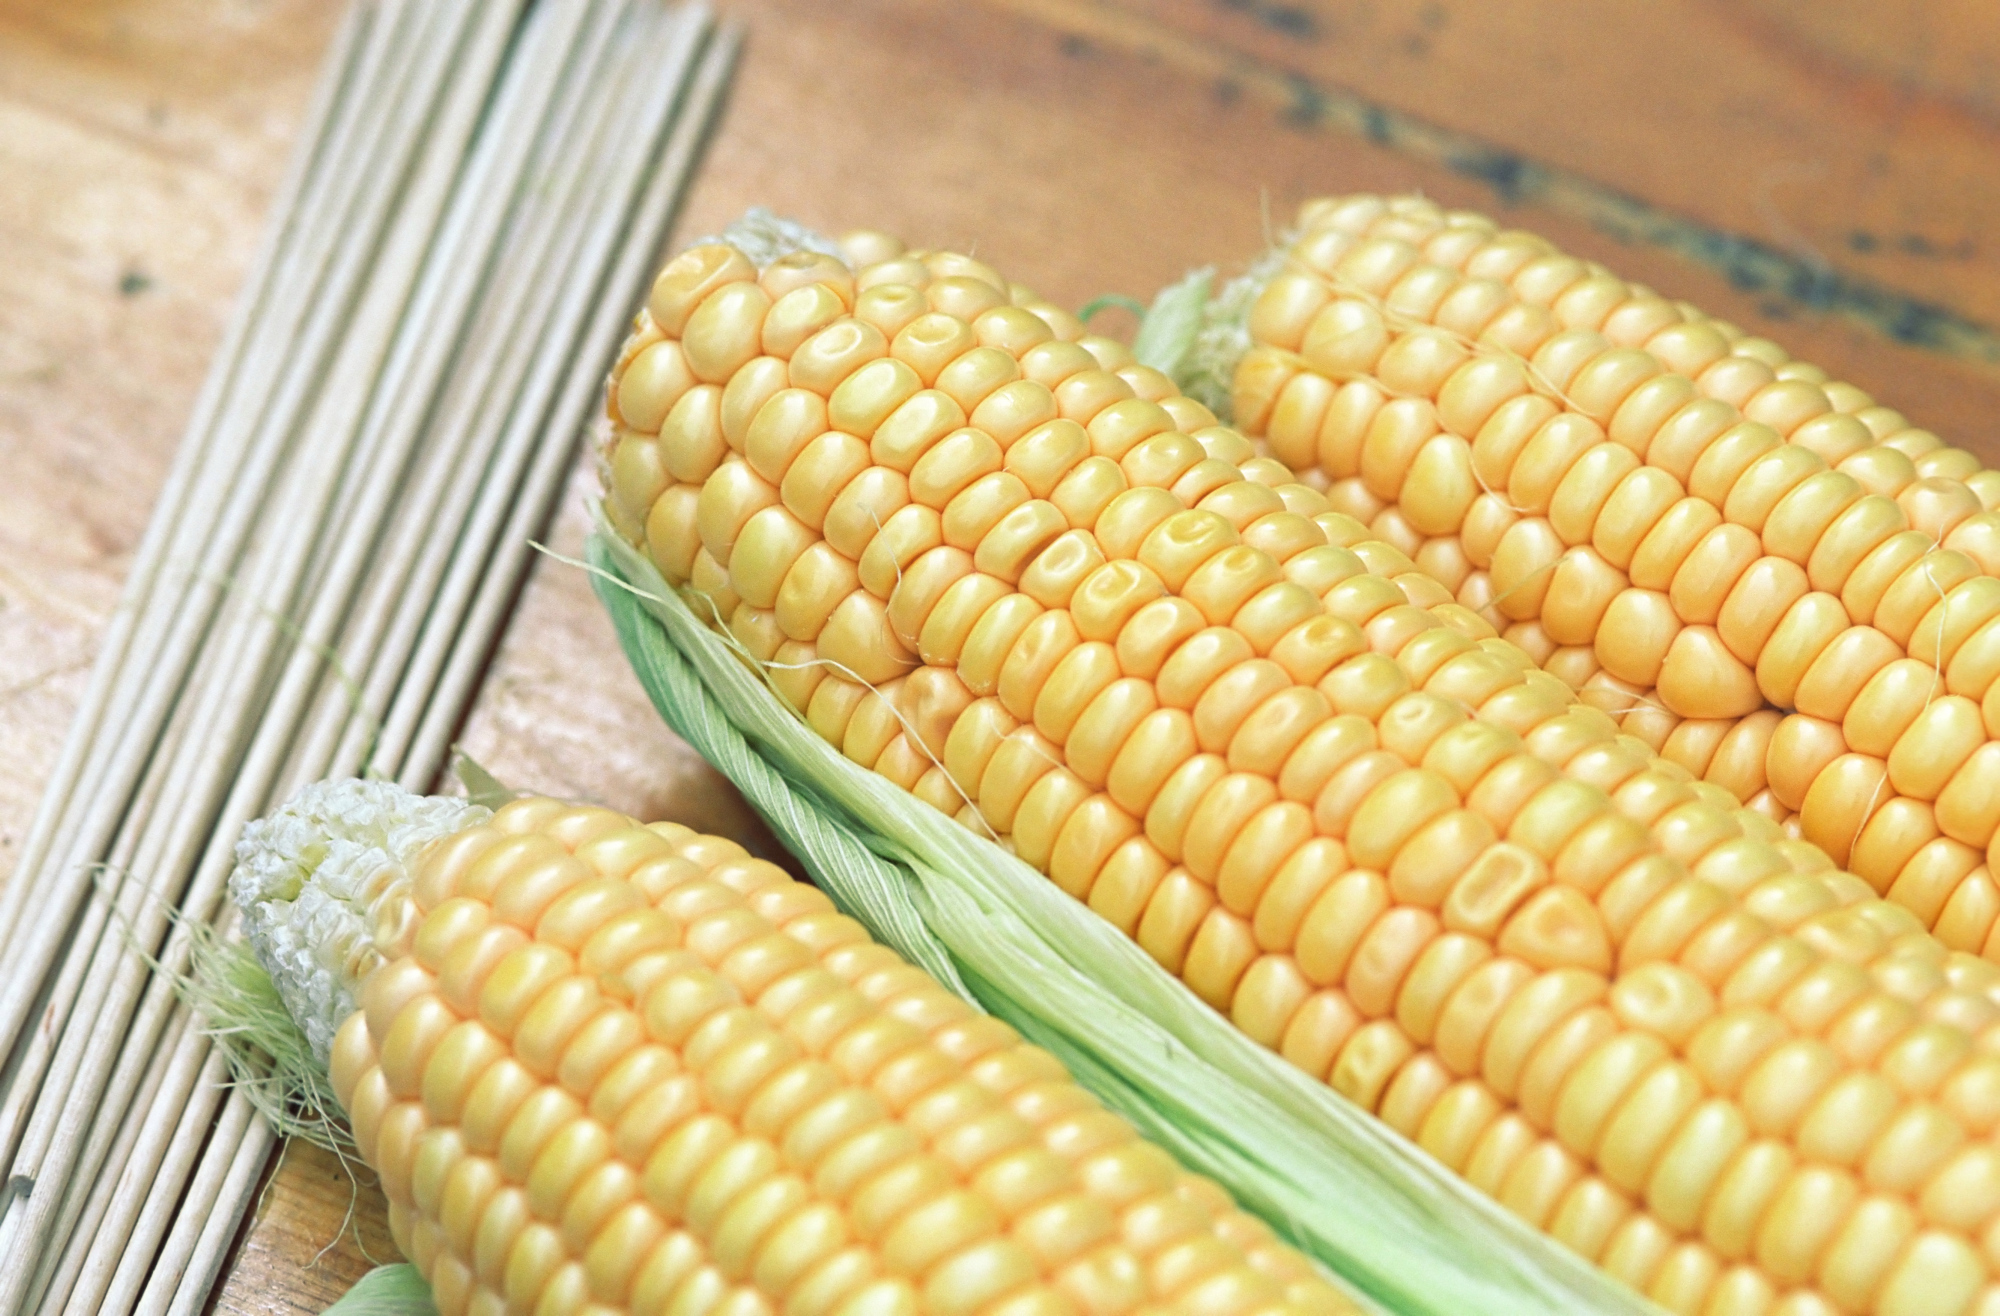 Corn and soybean ingredients, sugar, and vegetable oils are the most commonly genetically engineered products.